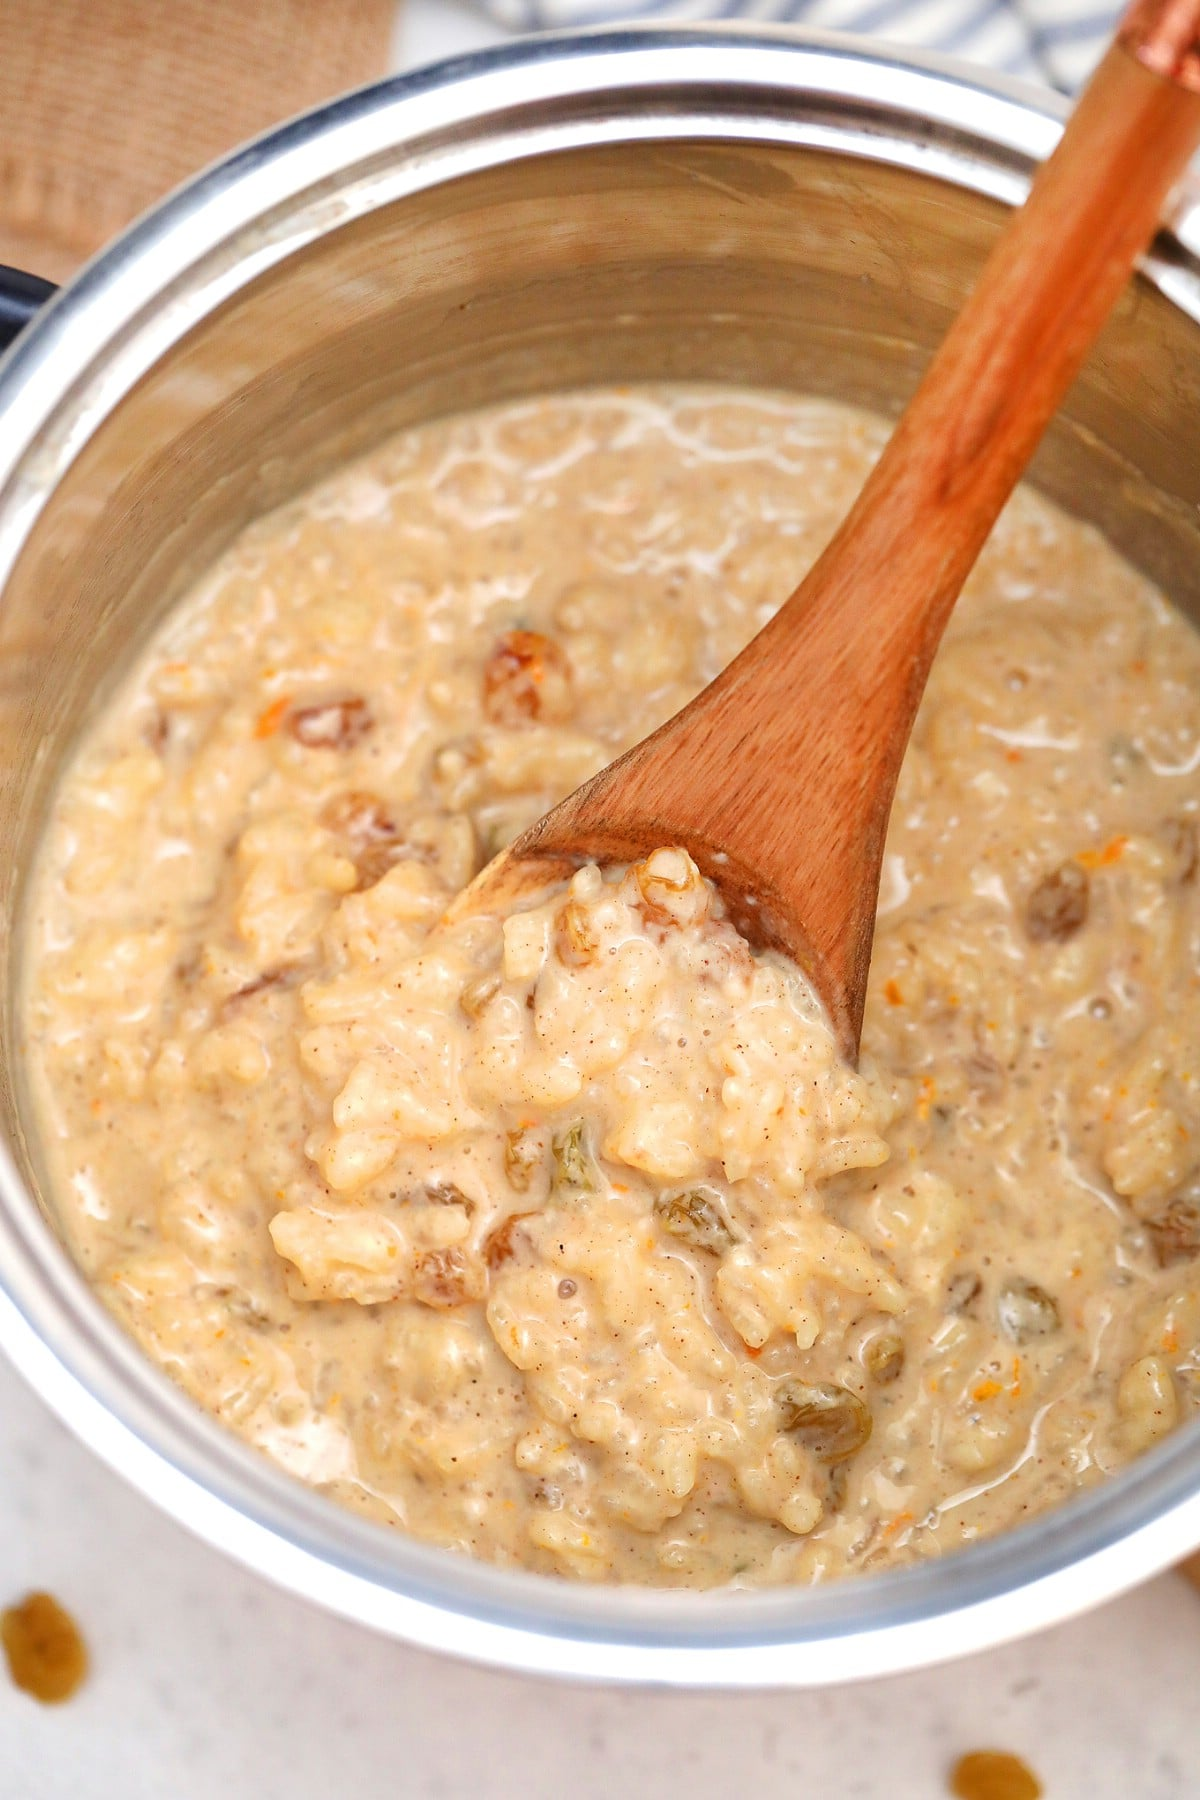 Rice pudding in stockpot